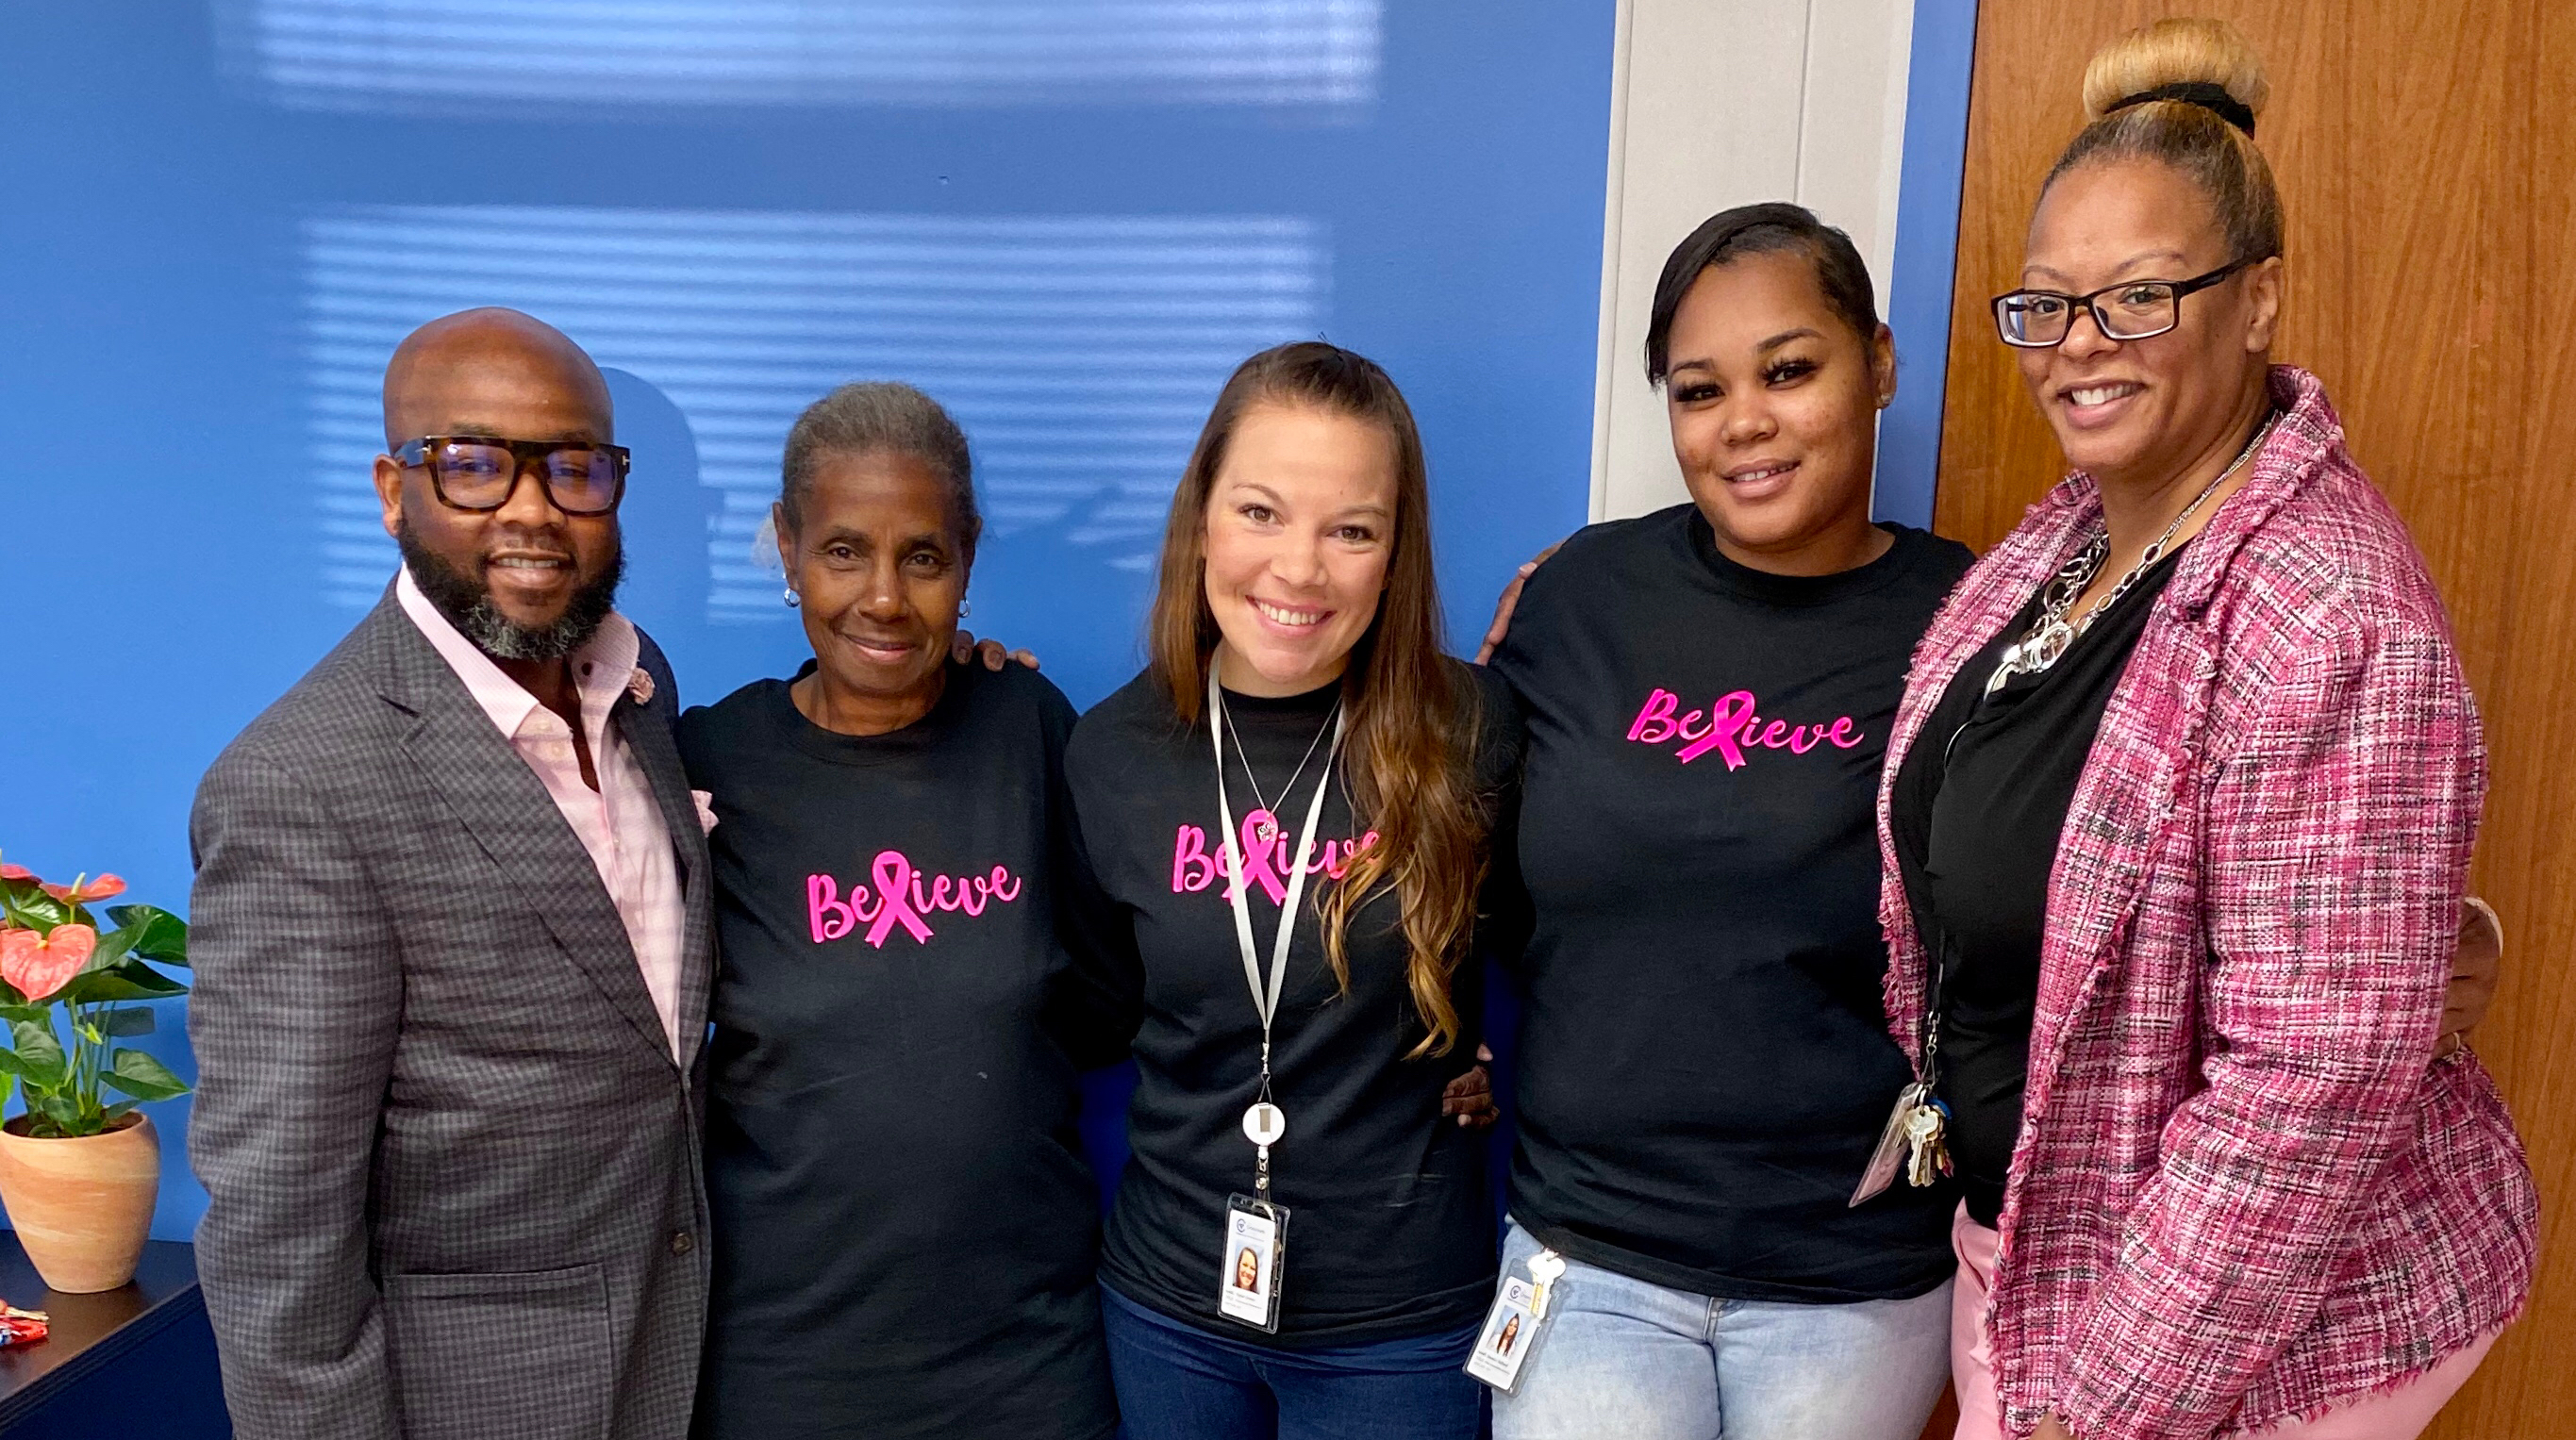 October 2019 is National Breast Cancer Awareness Month